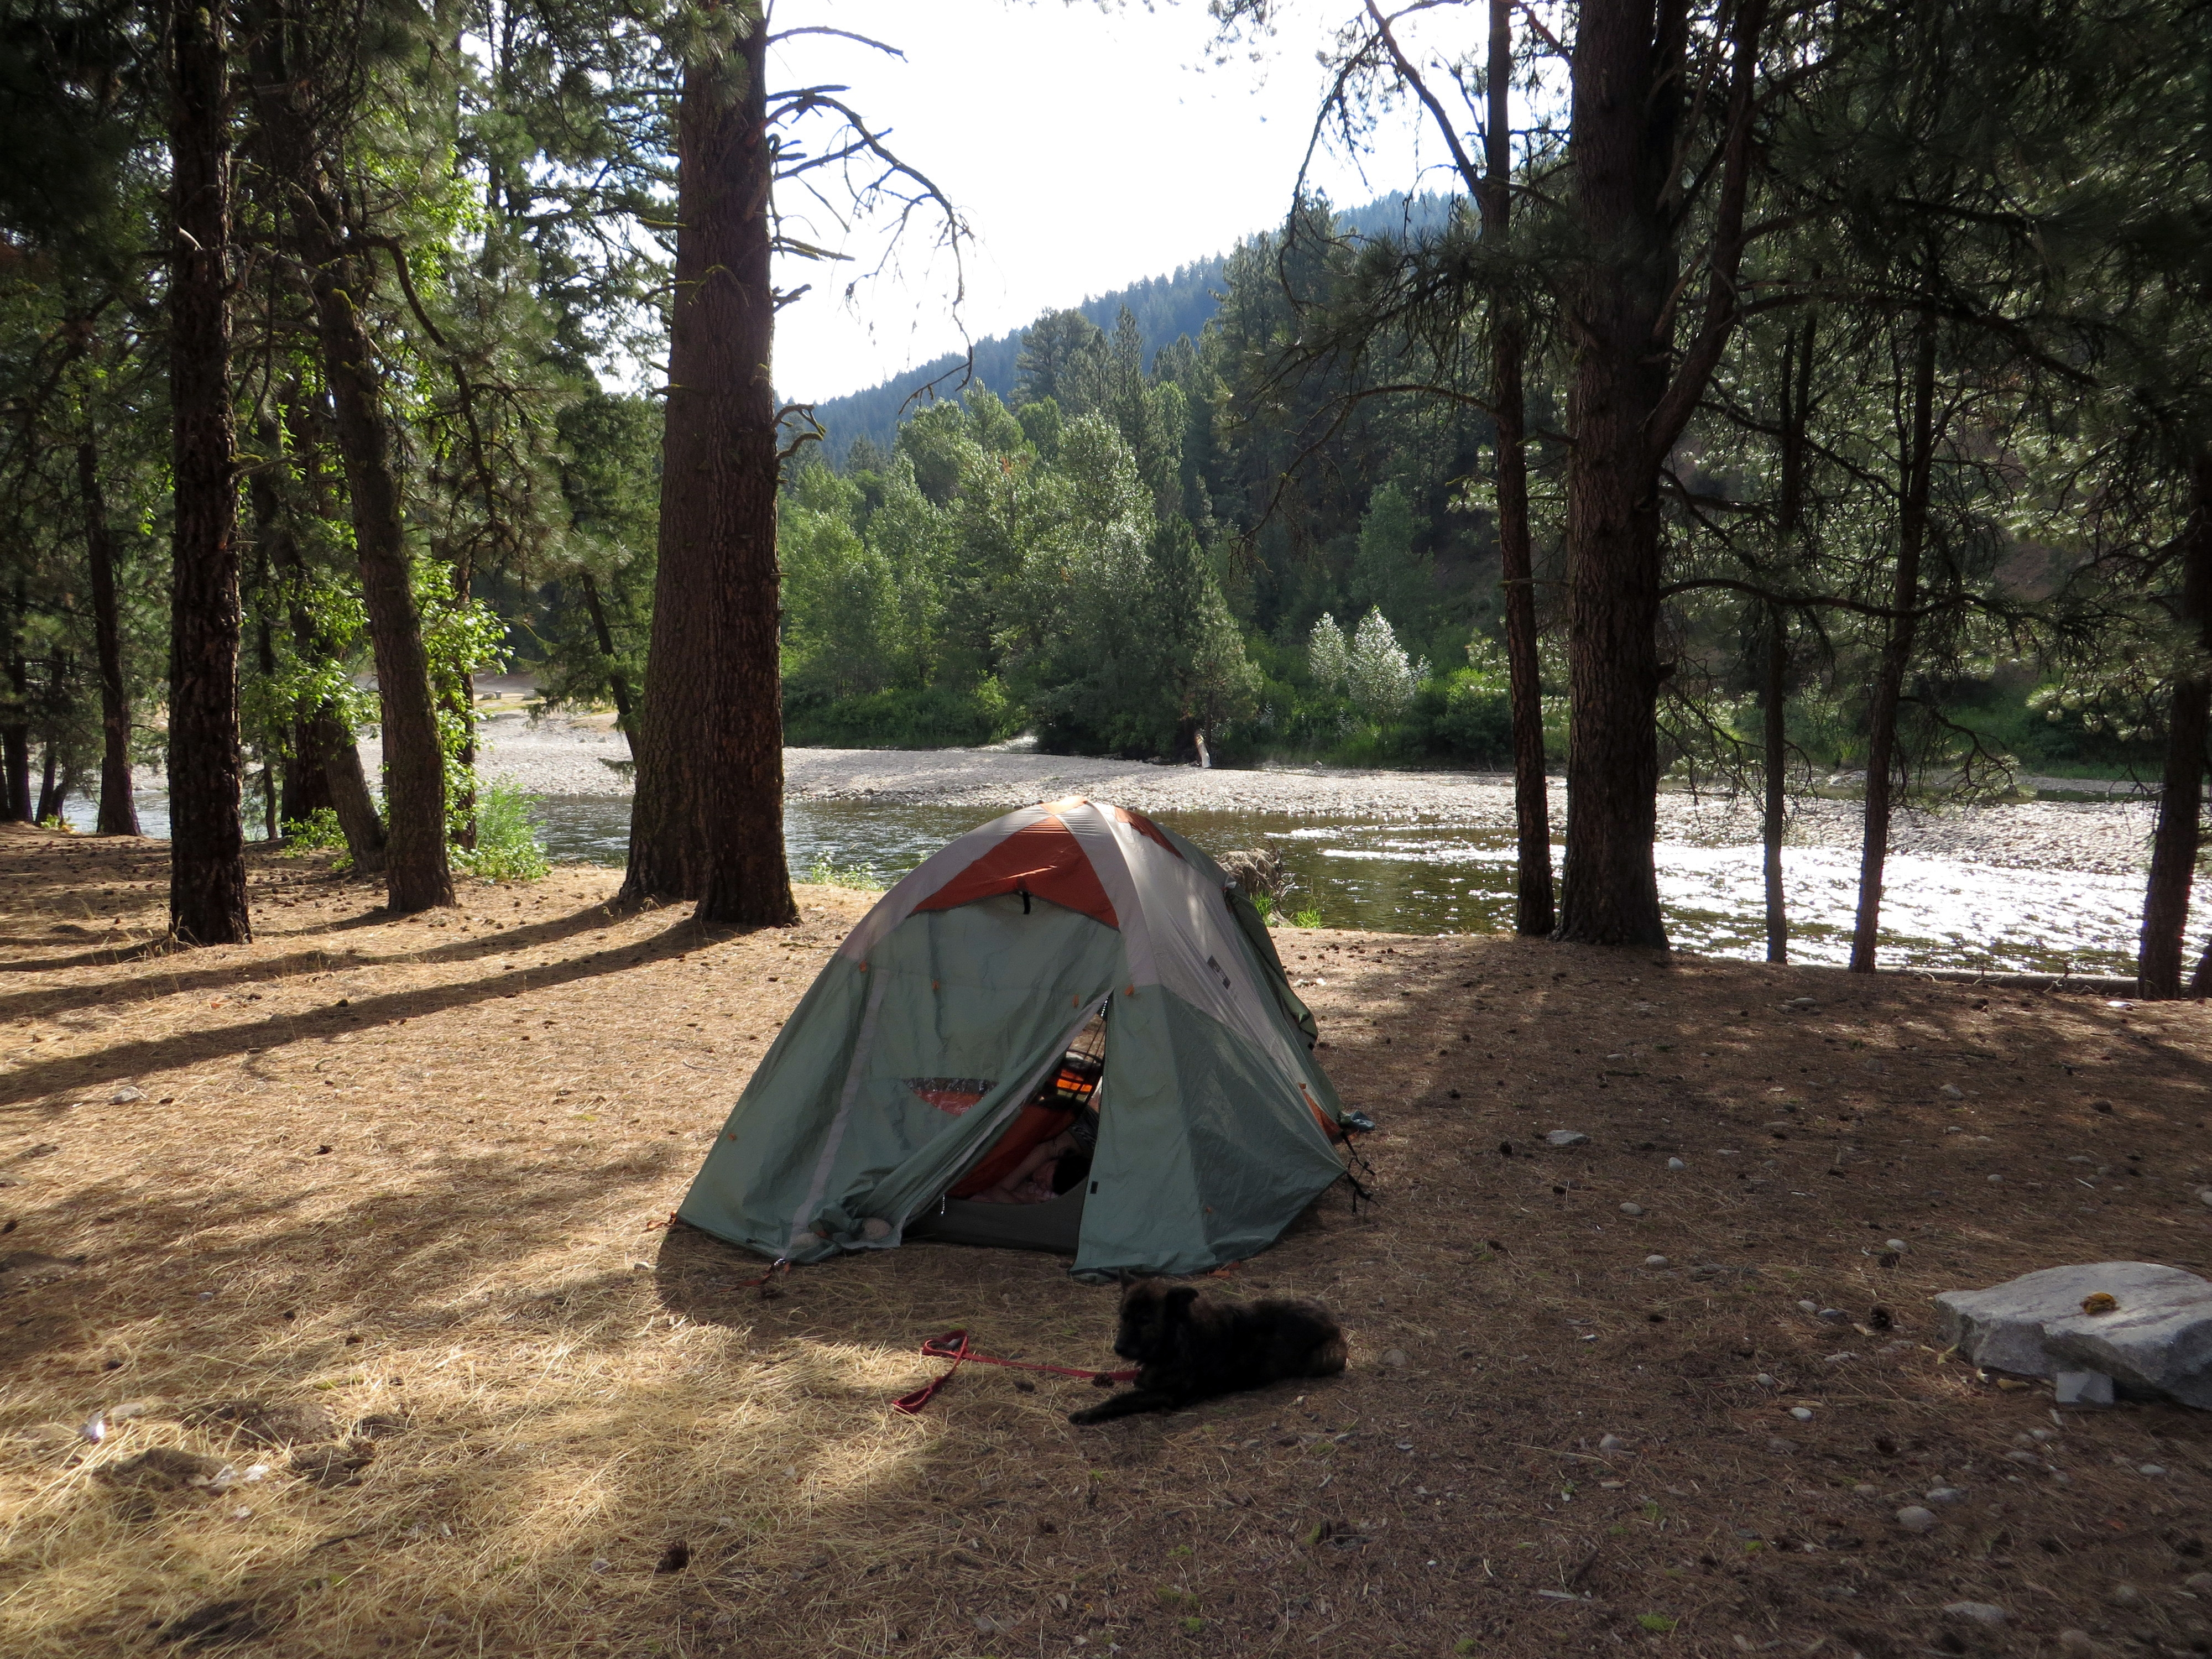 Sadie's Stupid Hot Springs Camp, Boise National Forest, ID July 29 (photo by D. Speredelozzi)